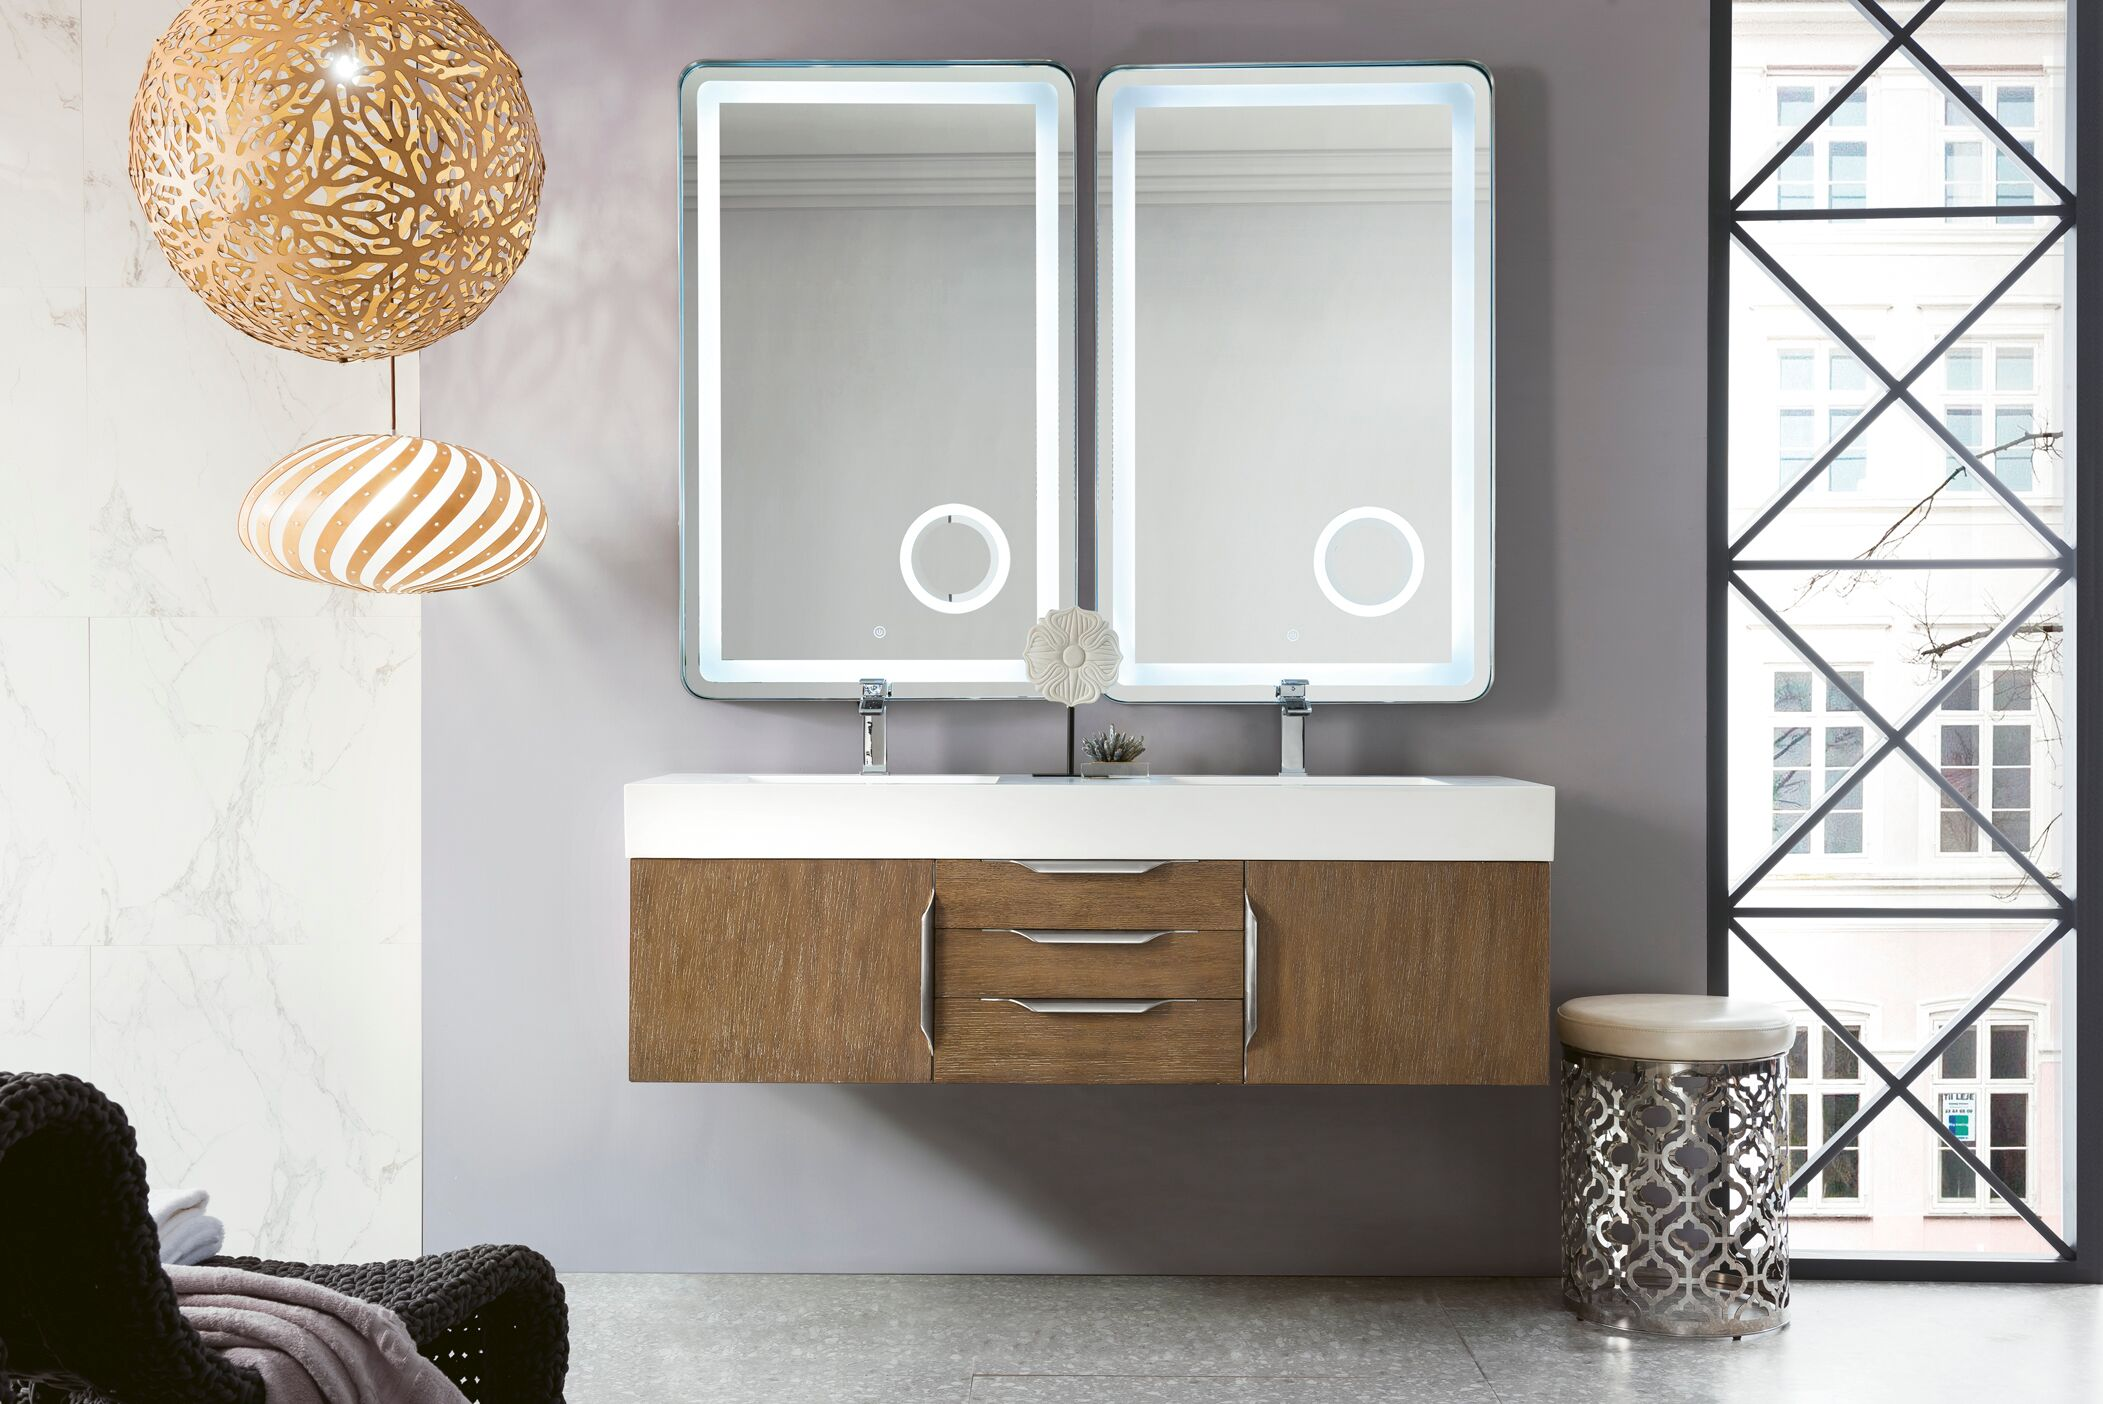 Brushed Nickel Mirror Wall Mounted Mirror Small Mirror Bathroom Mirrors For Wall 23 50 X 19 50 Framed